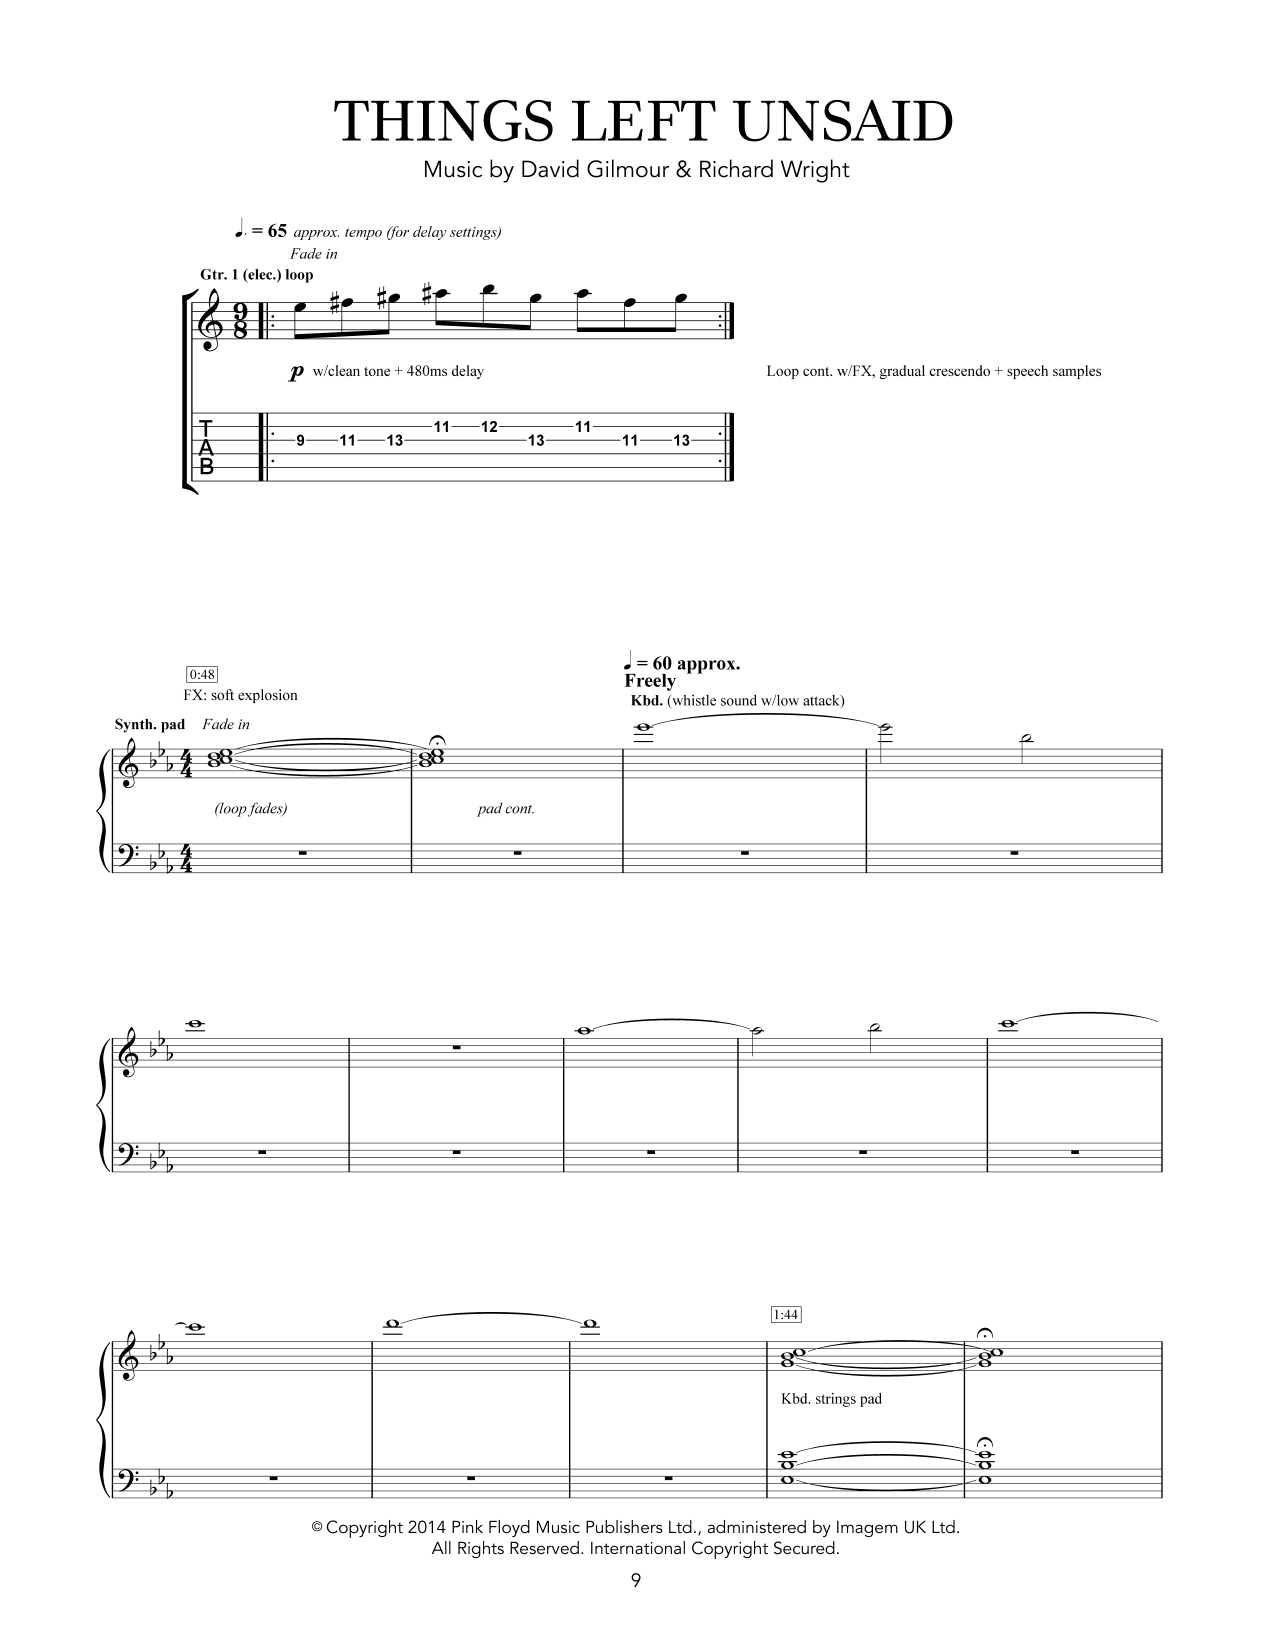 Things Left Unsaid Sheet Music